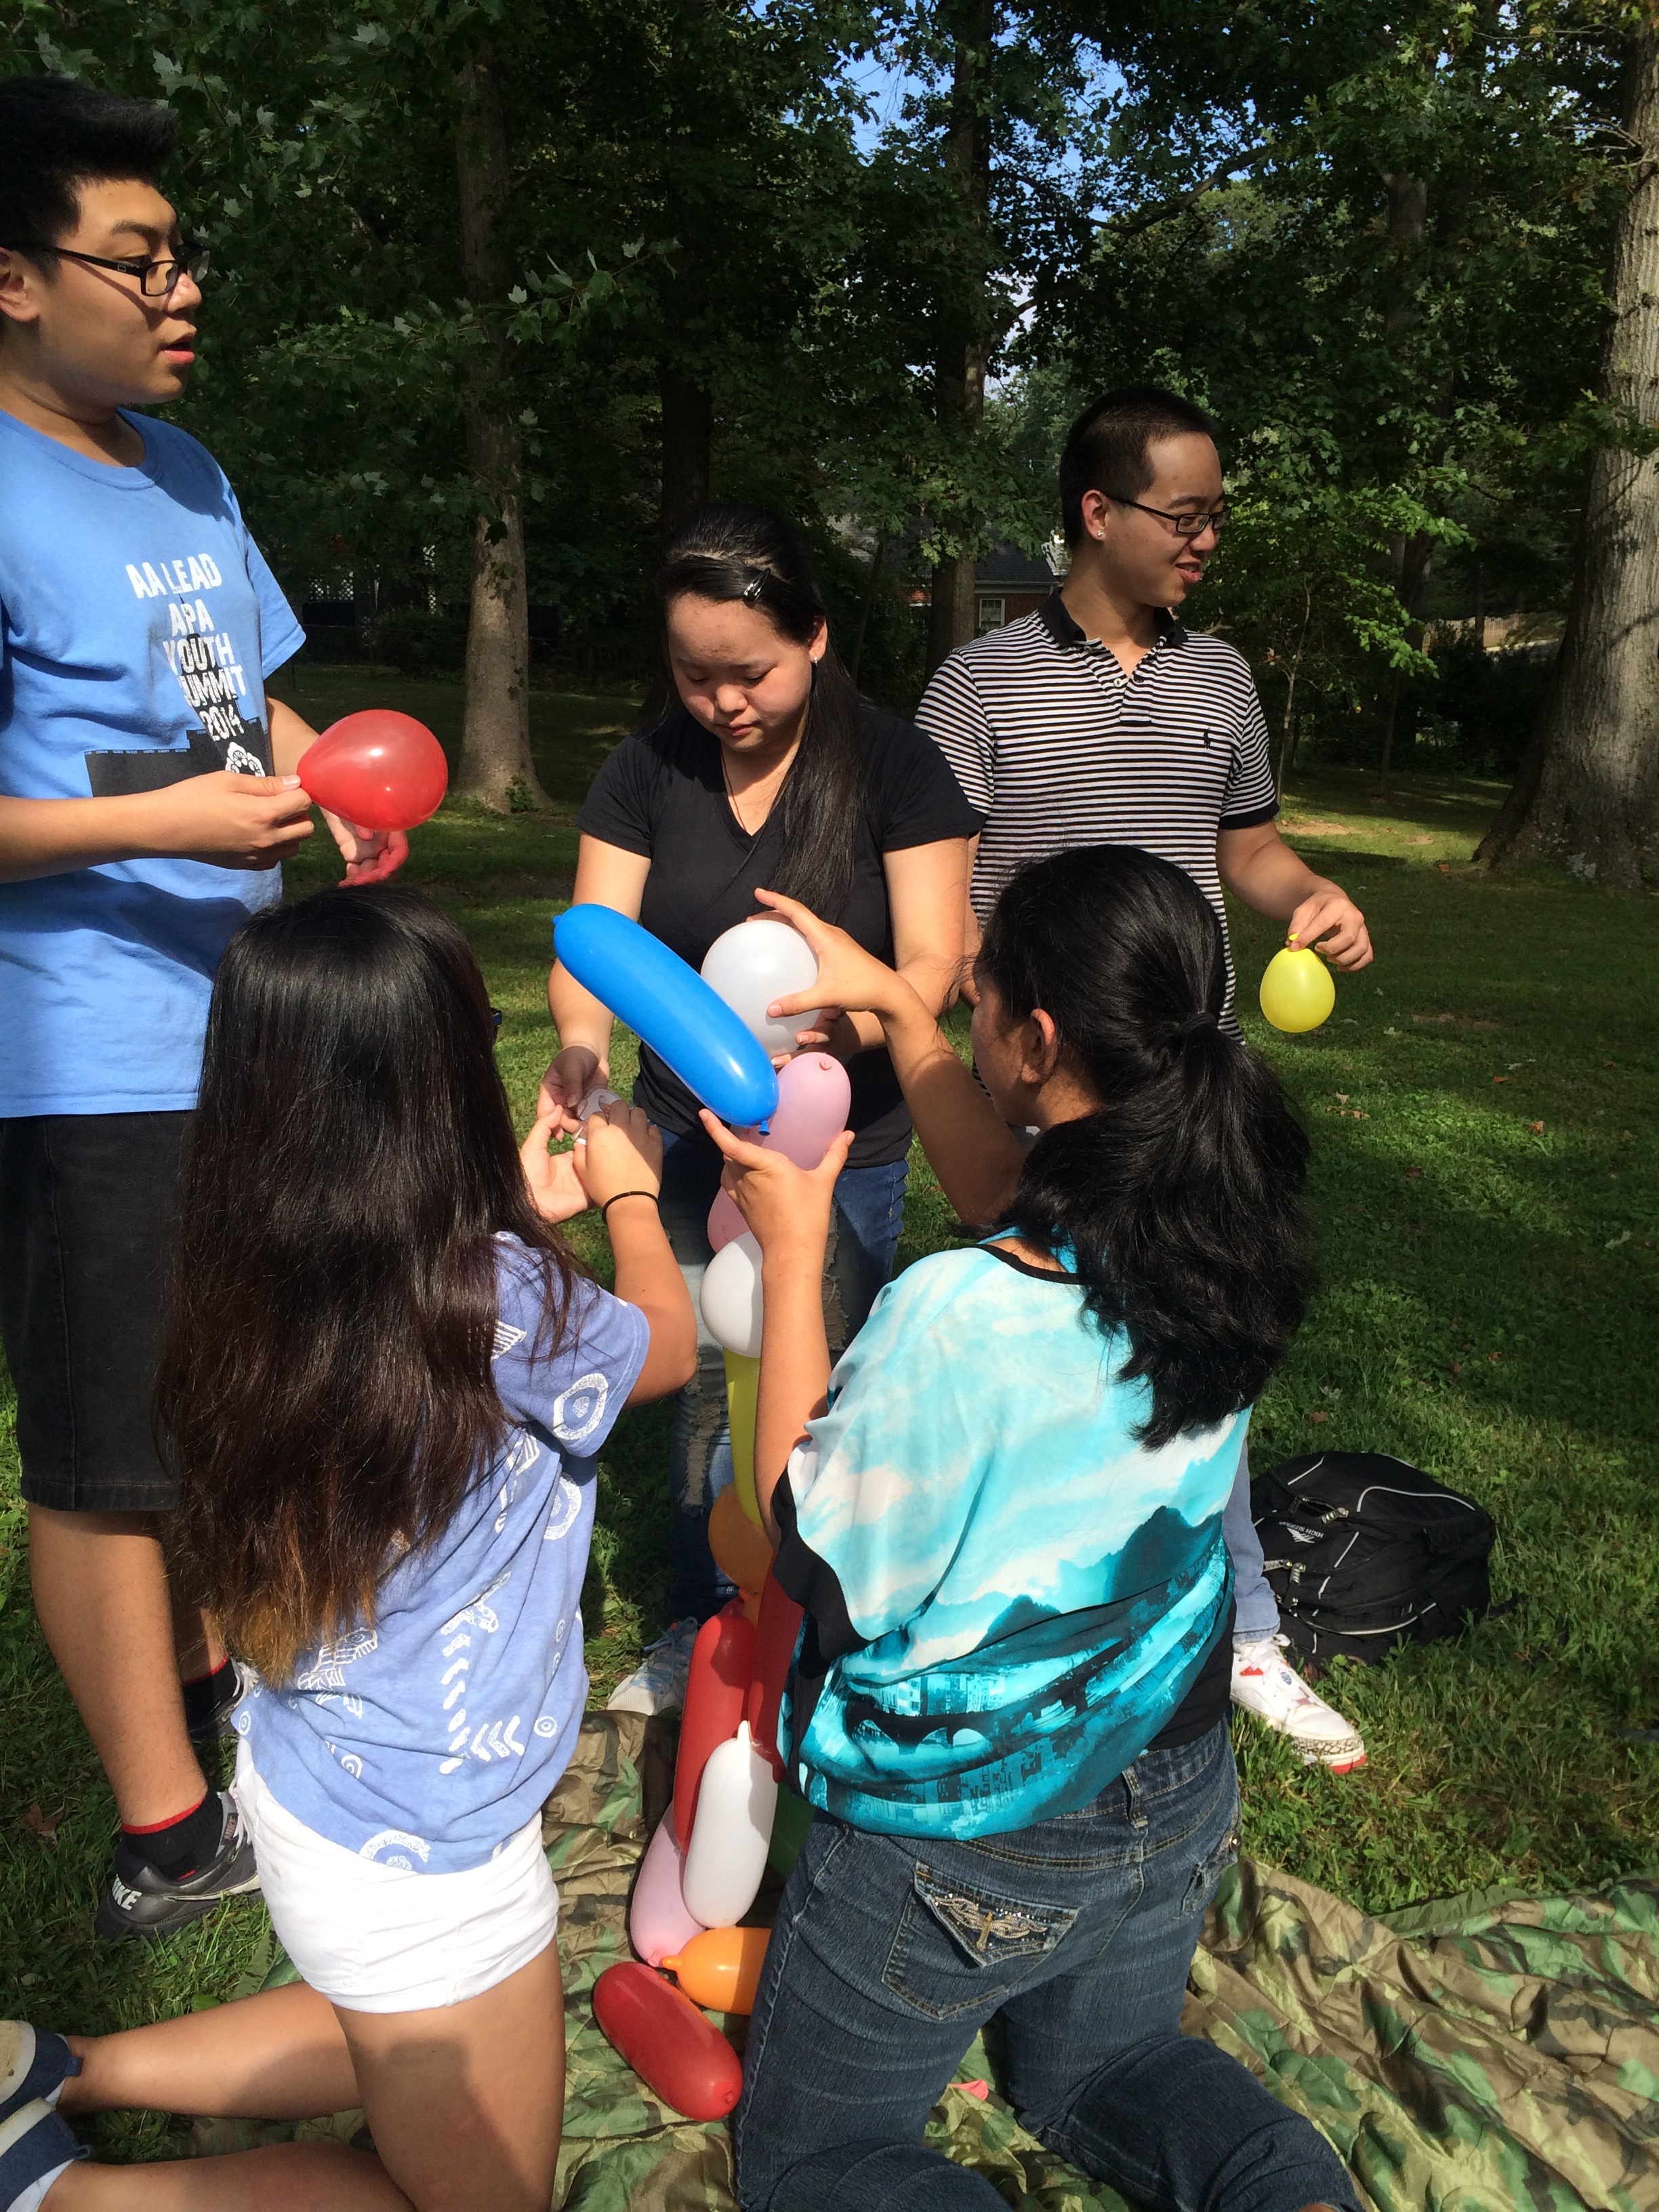 md high school programs off to a running start asian american lead after the energetic competition filled laughter the sound of popping balloons encouragement and inventive techniques youth had a chance to discuss